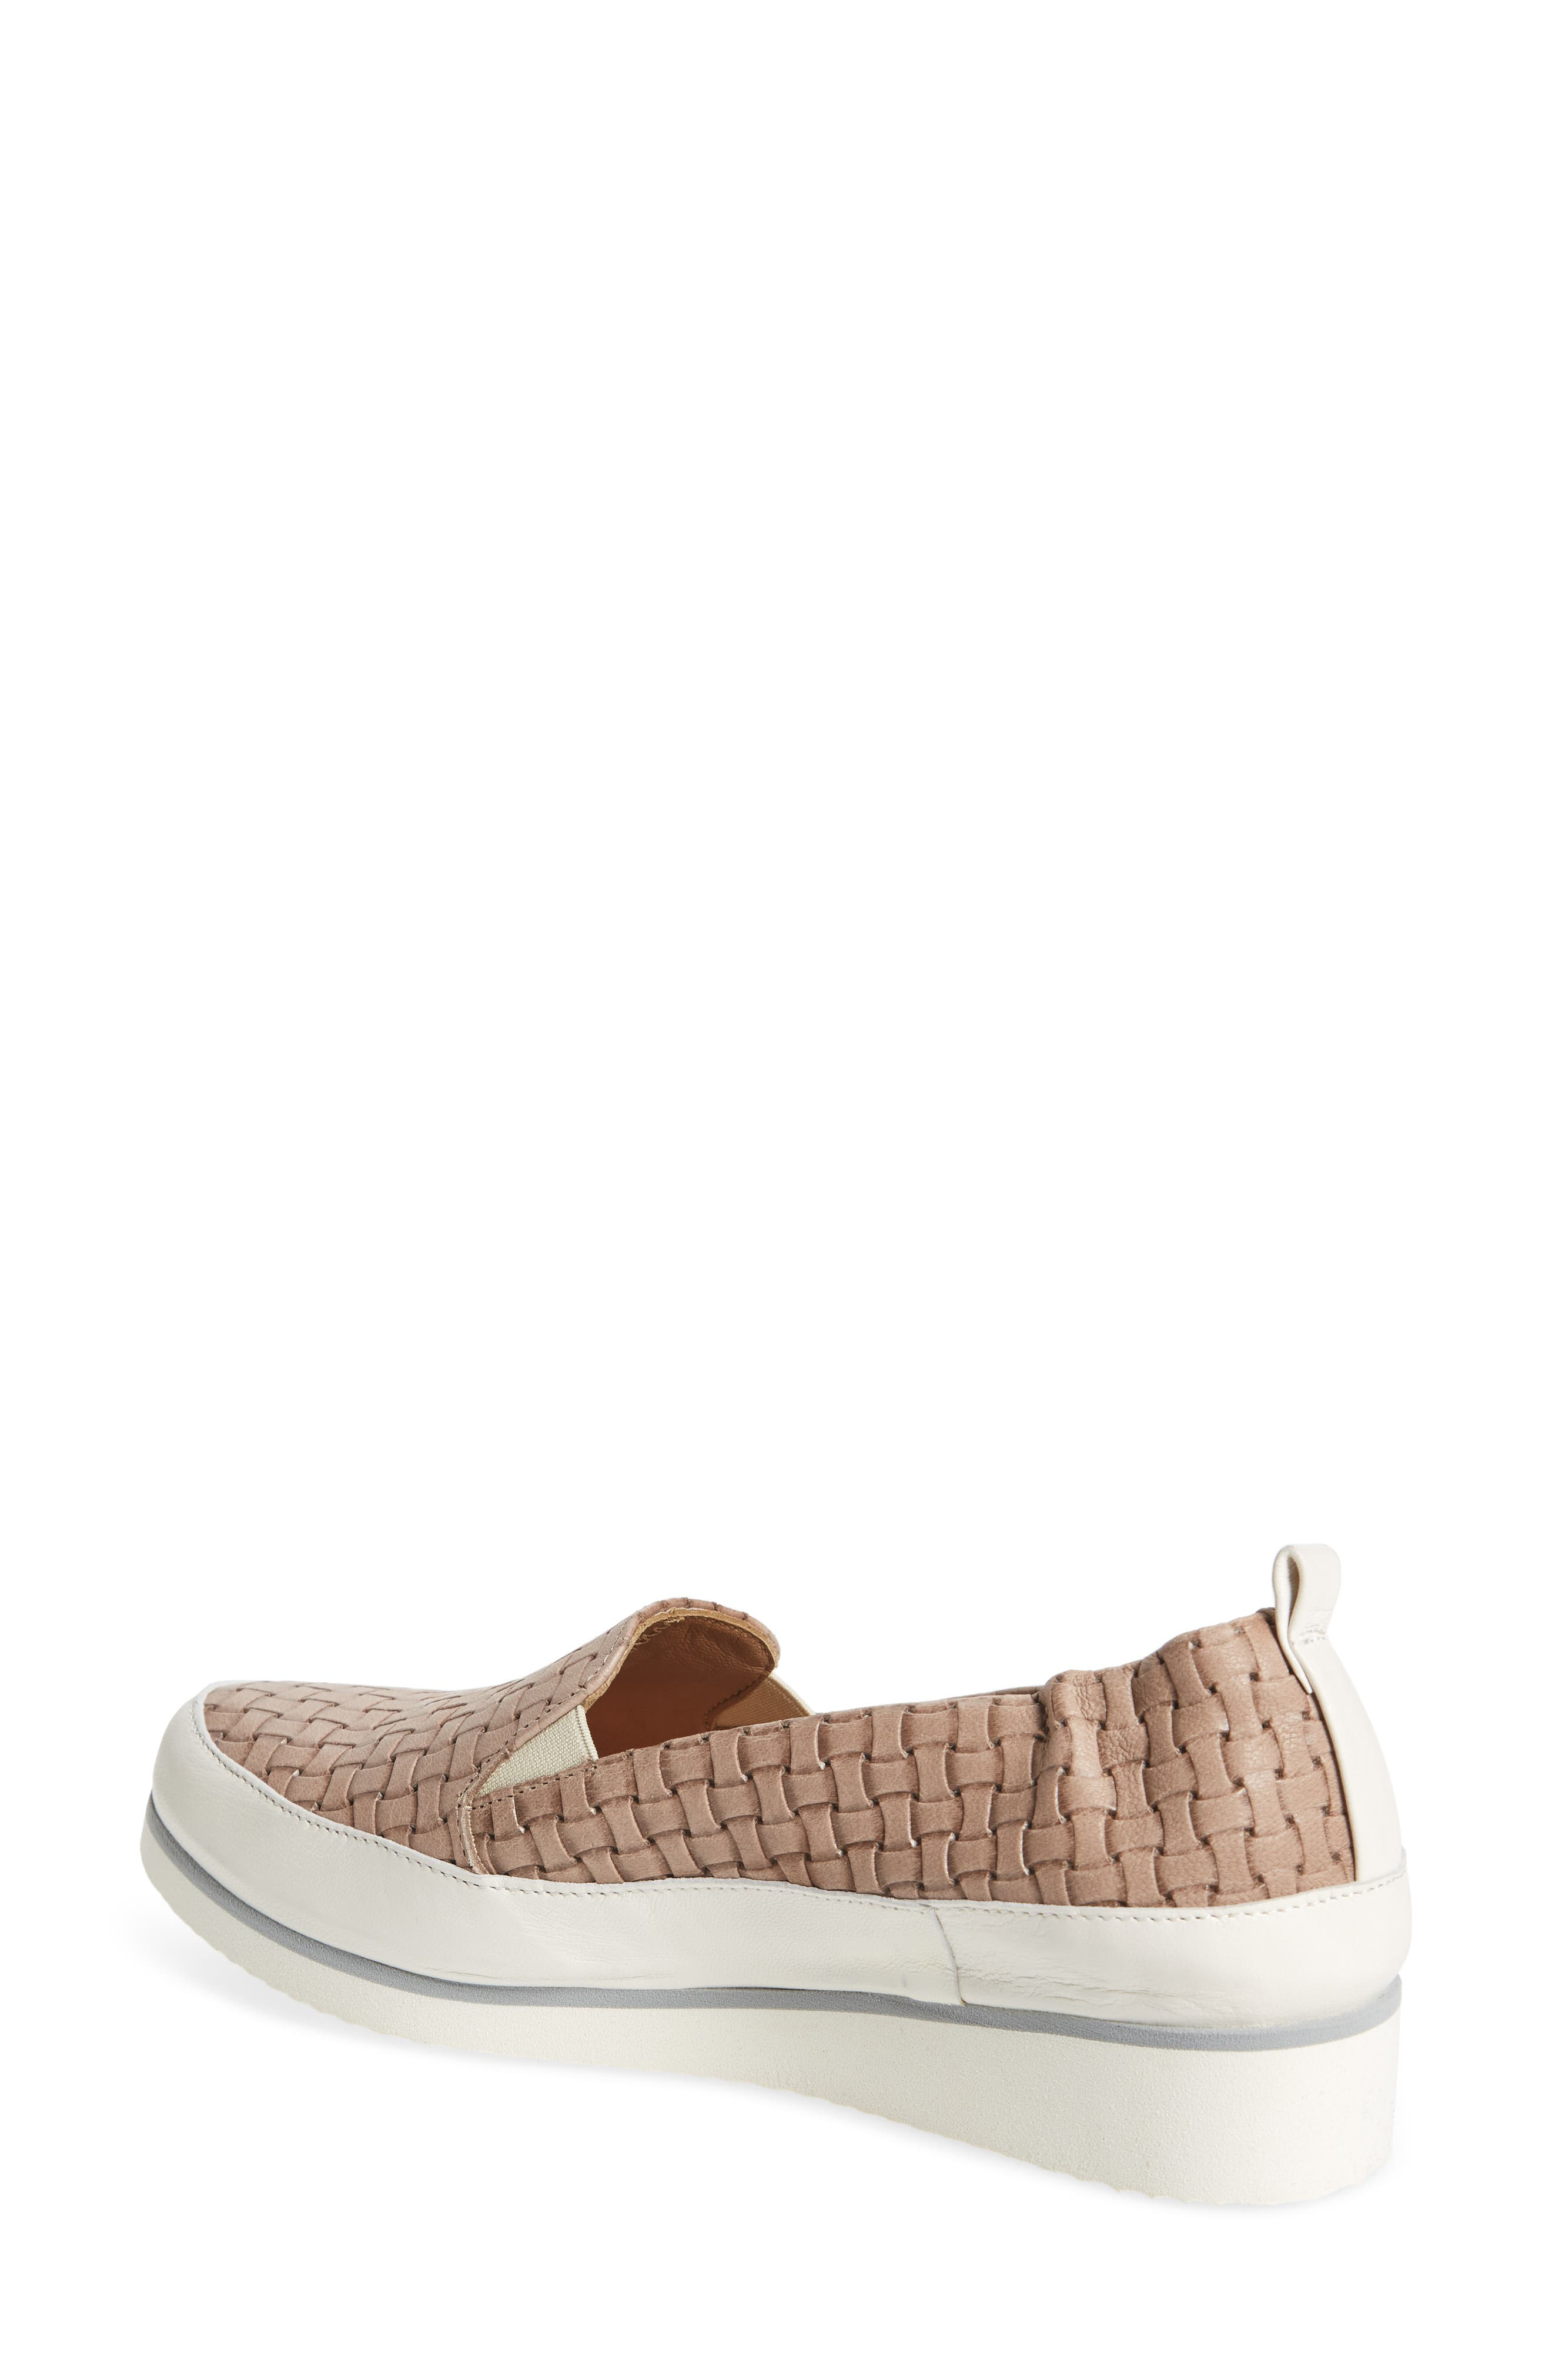 Nell Slip-On Sneaker,                             Alternate thumbnail 8, color,